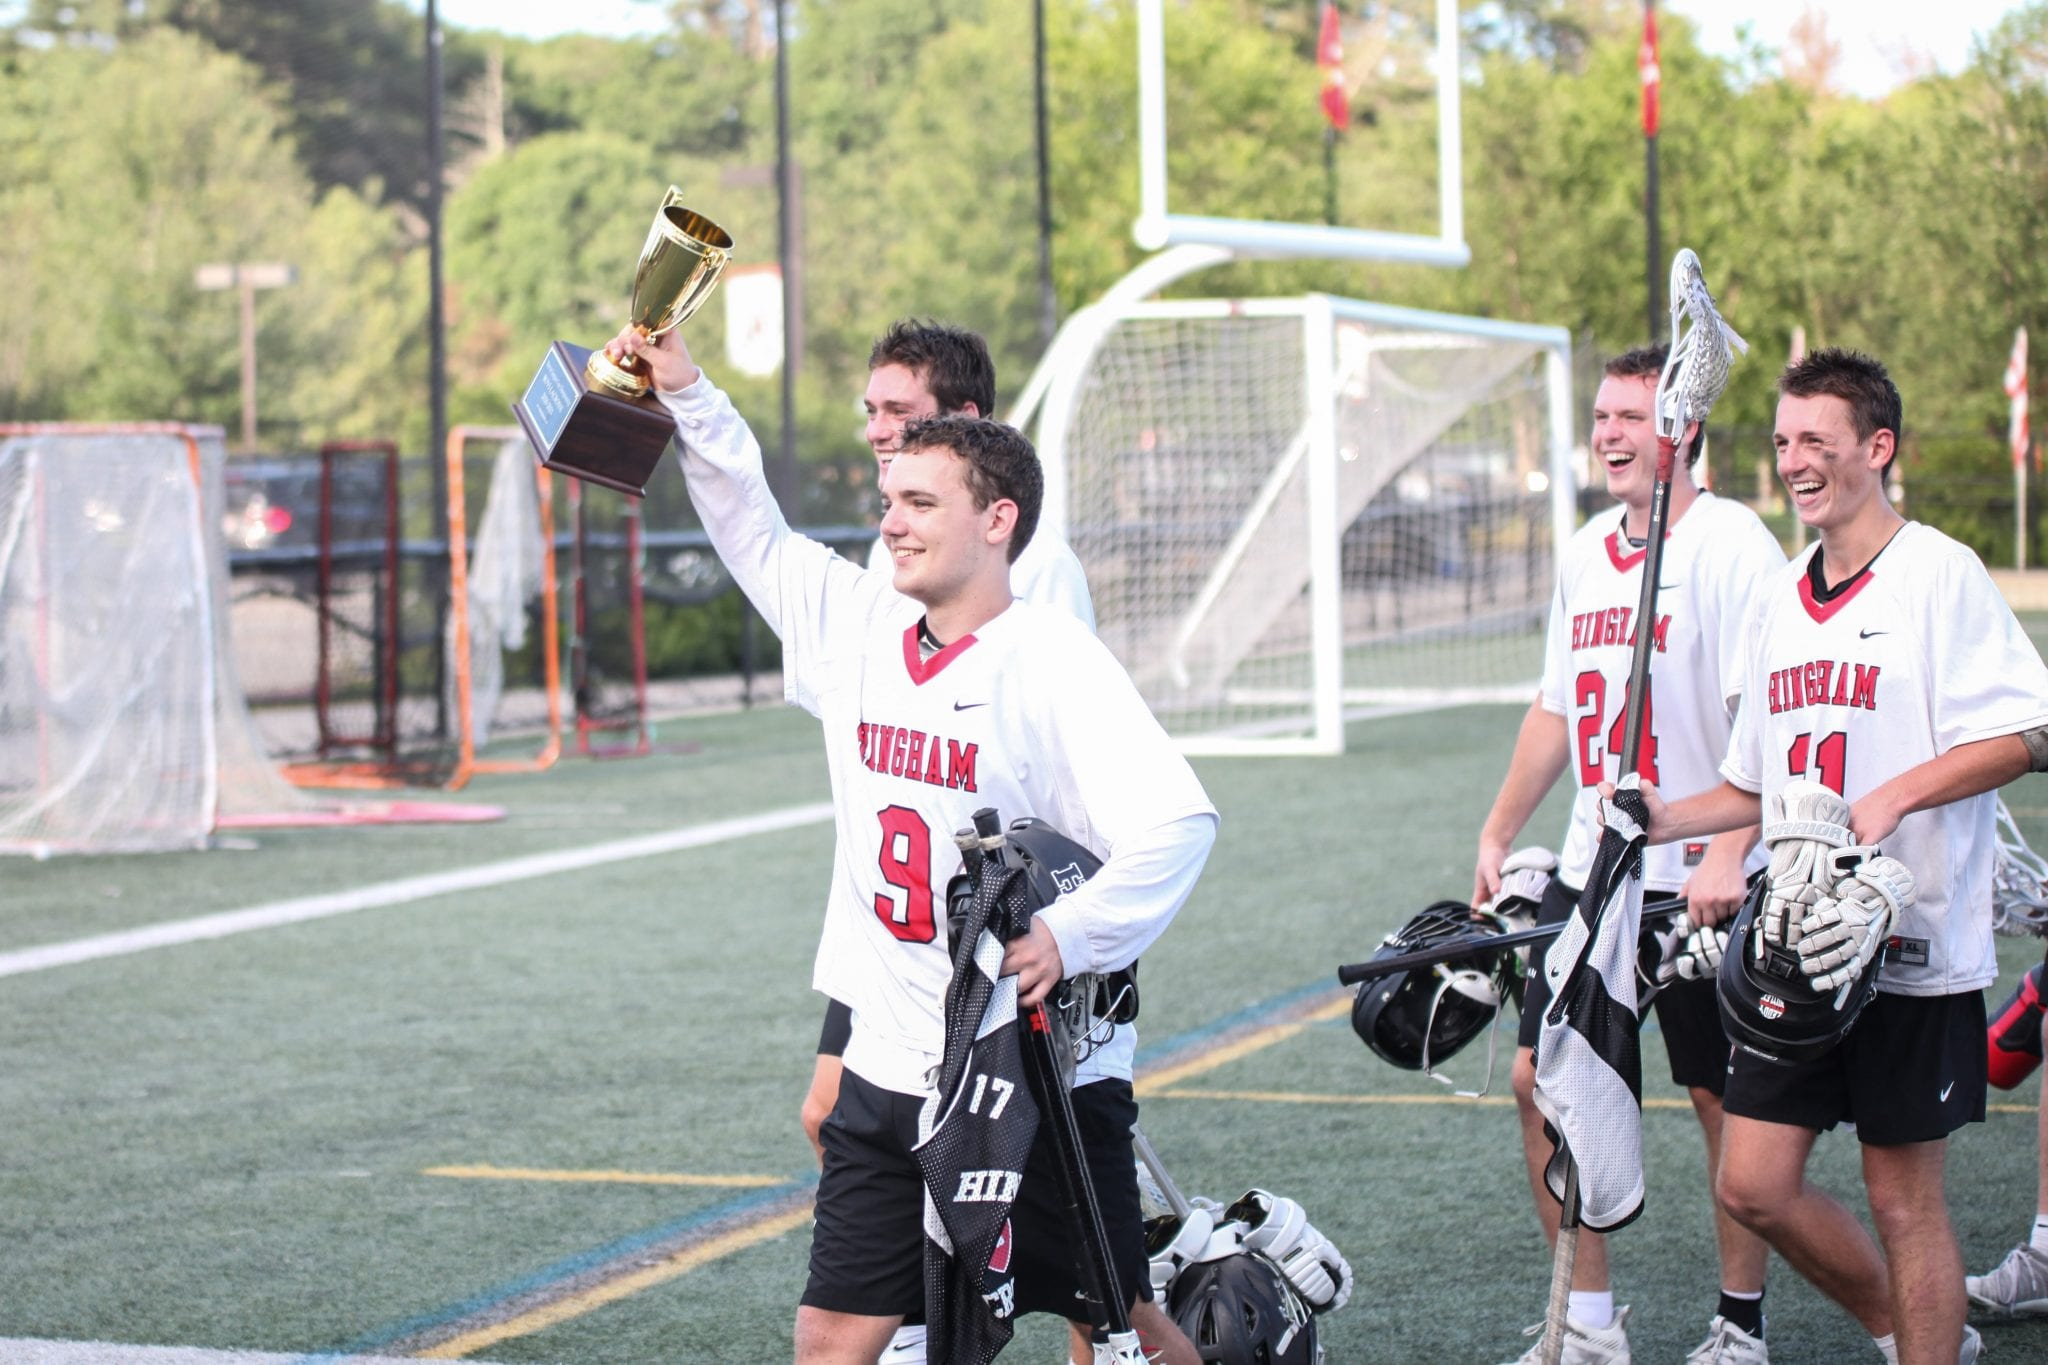 Senior captain and goalie Sam Bellomy leads his team off the field raising the Patriot Cup trophy high in air.